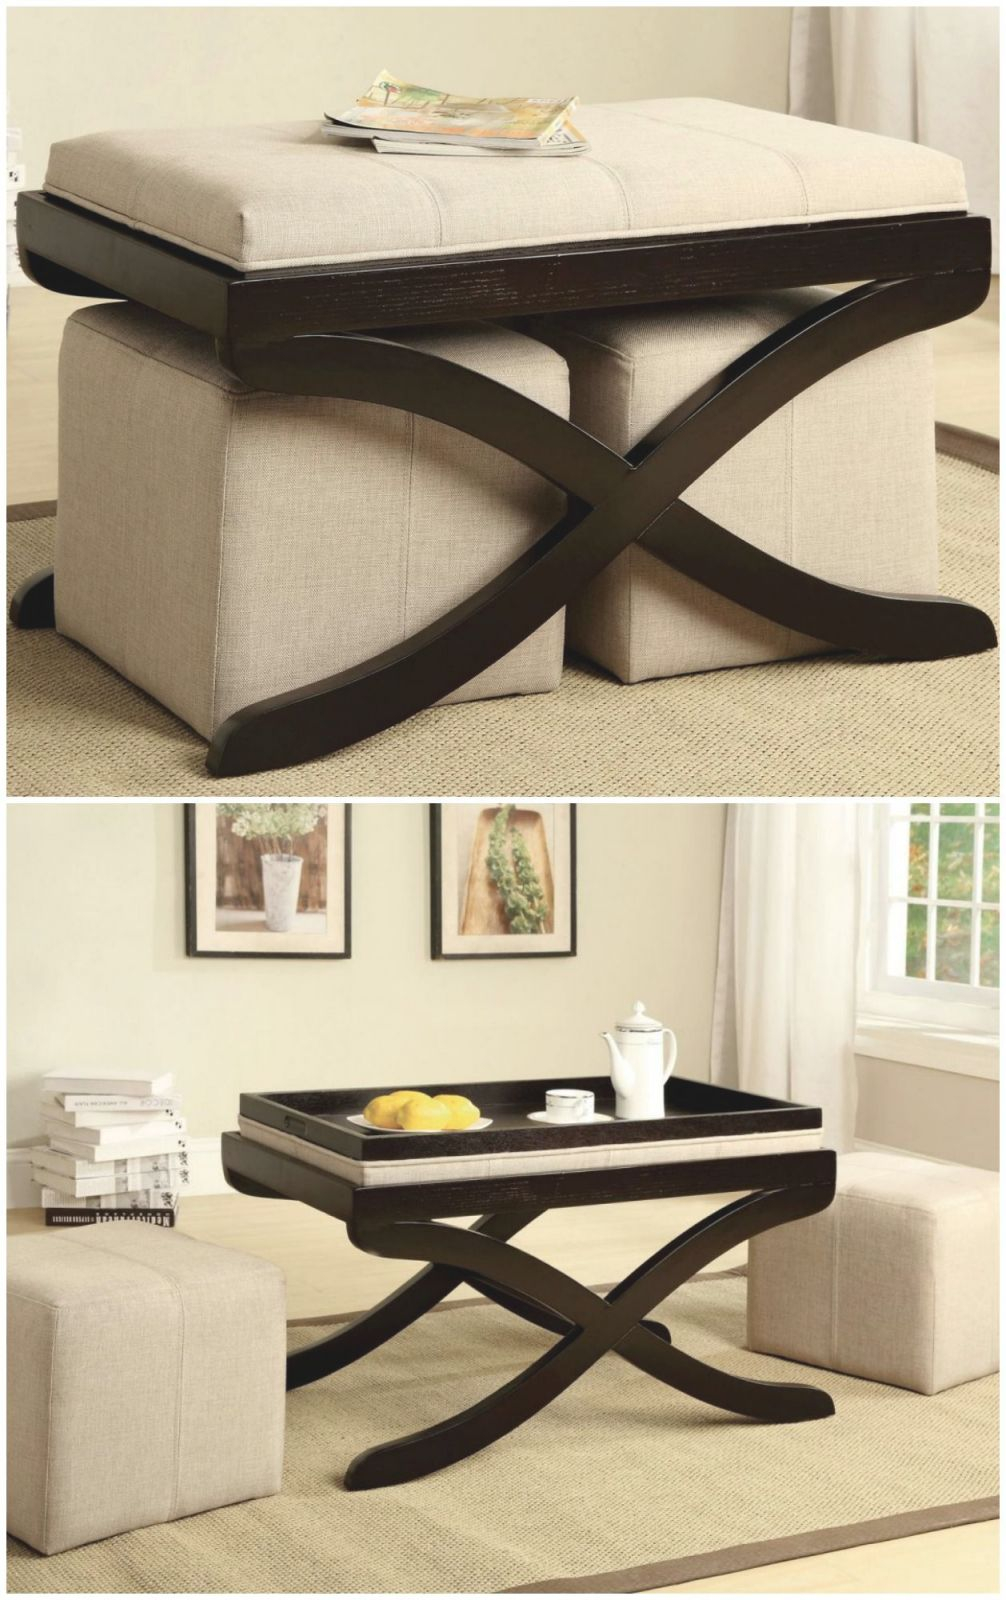 Stylish And Space-Saving. Padded Bench Seat Can Be Flipped within Elegant Space Saving Living Room Furniture